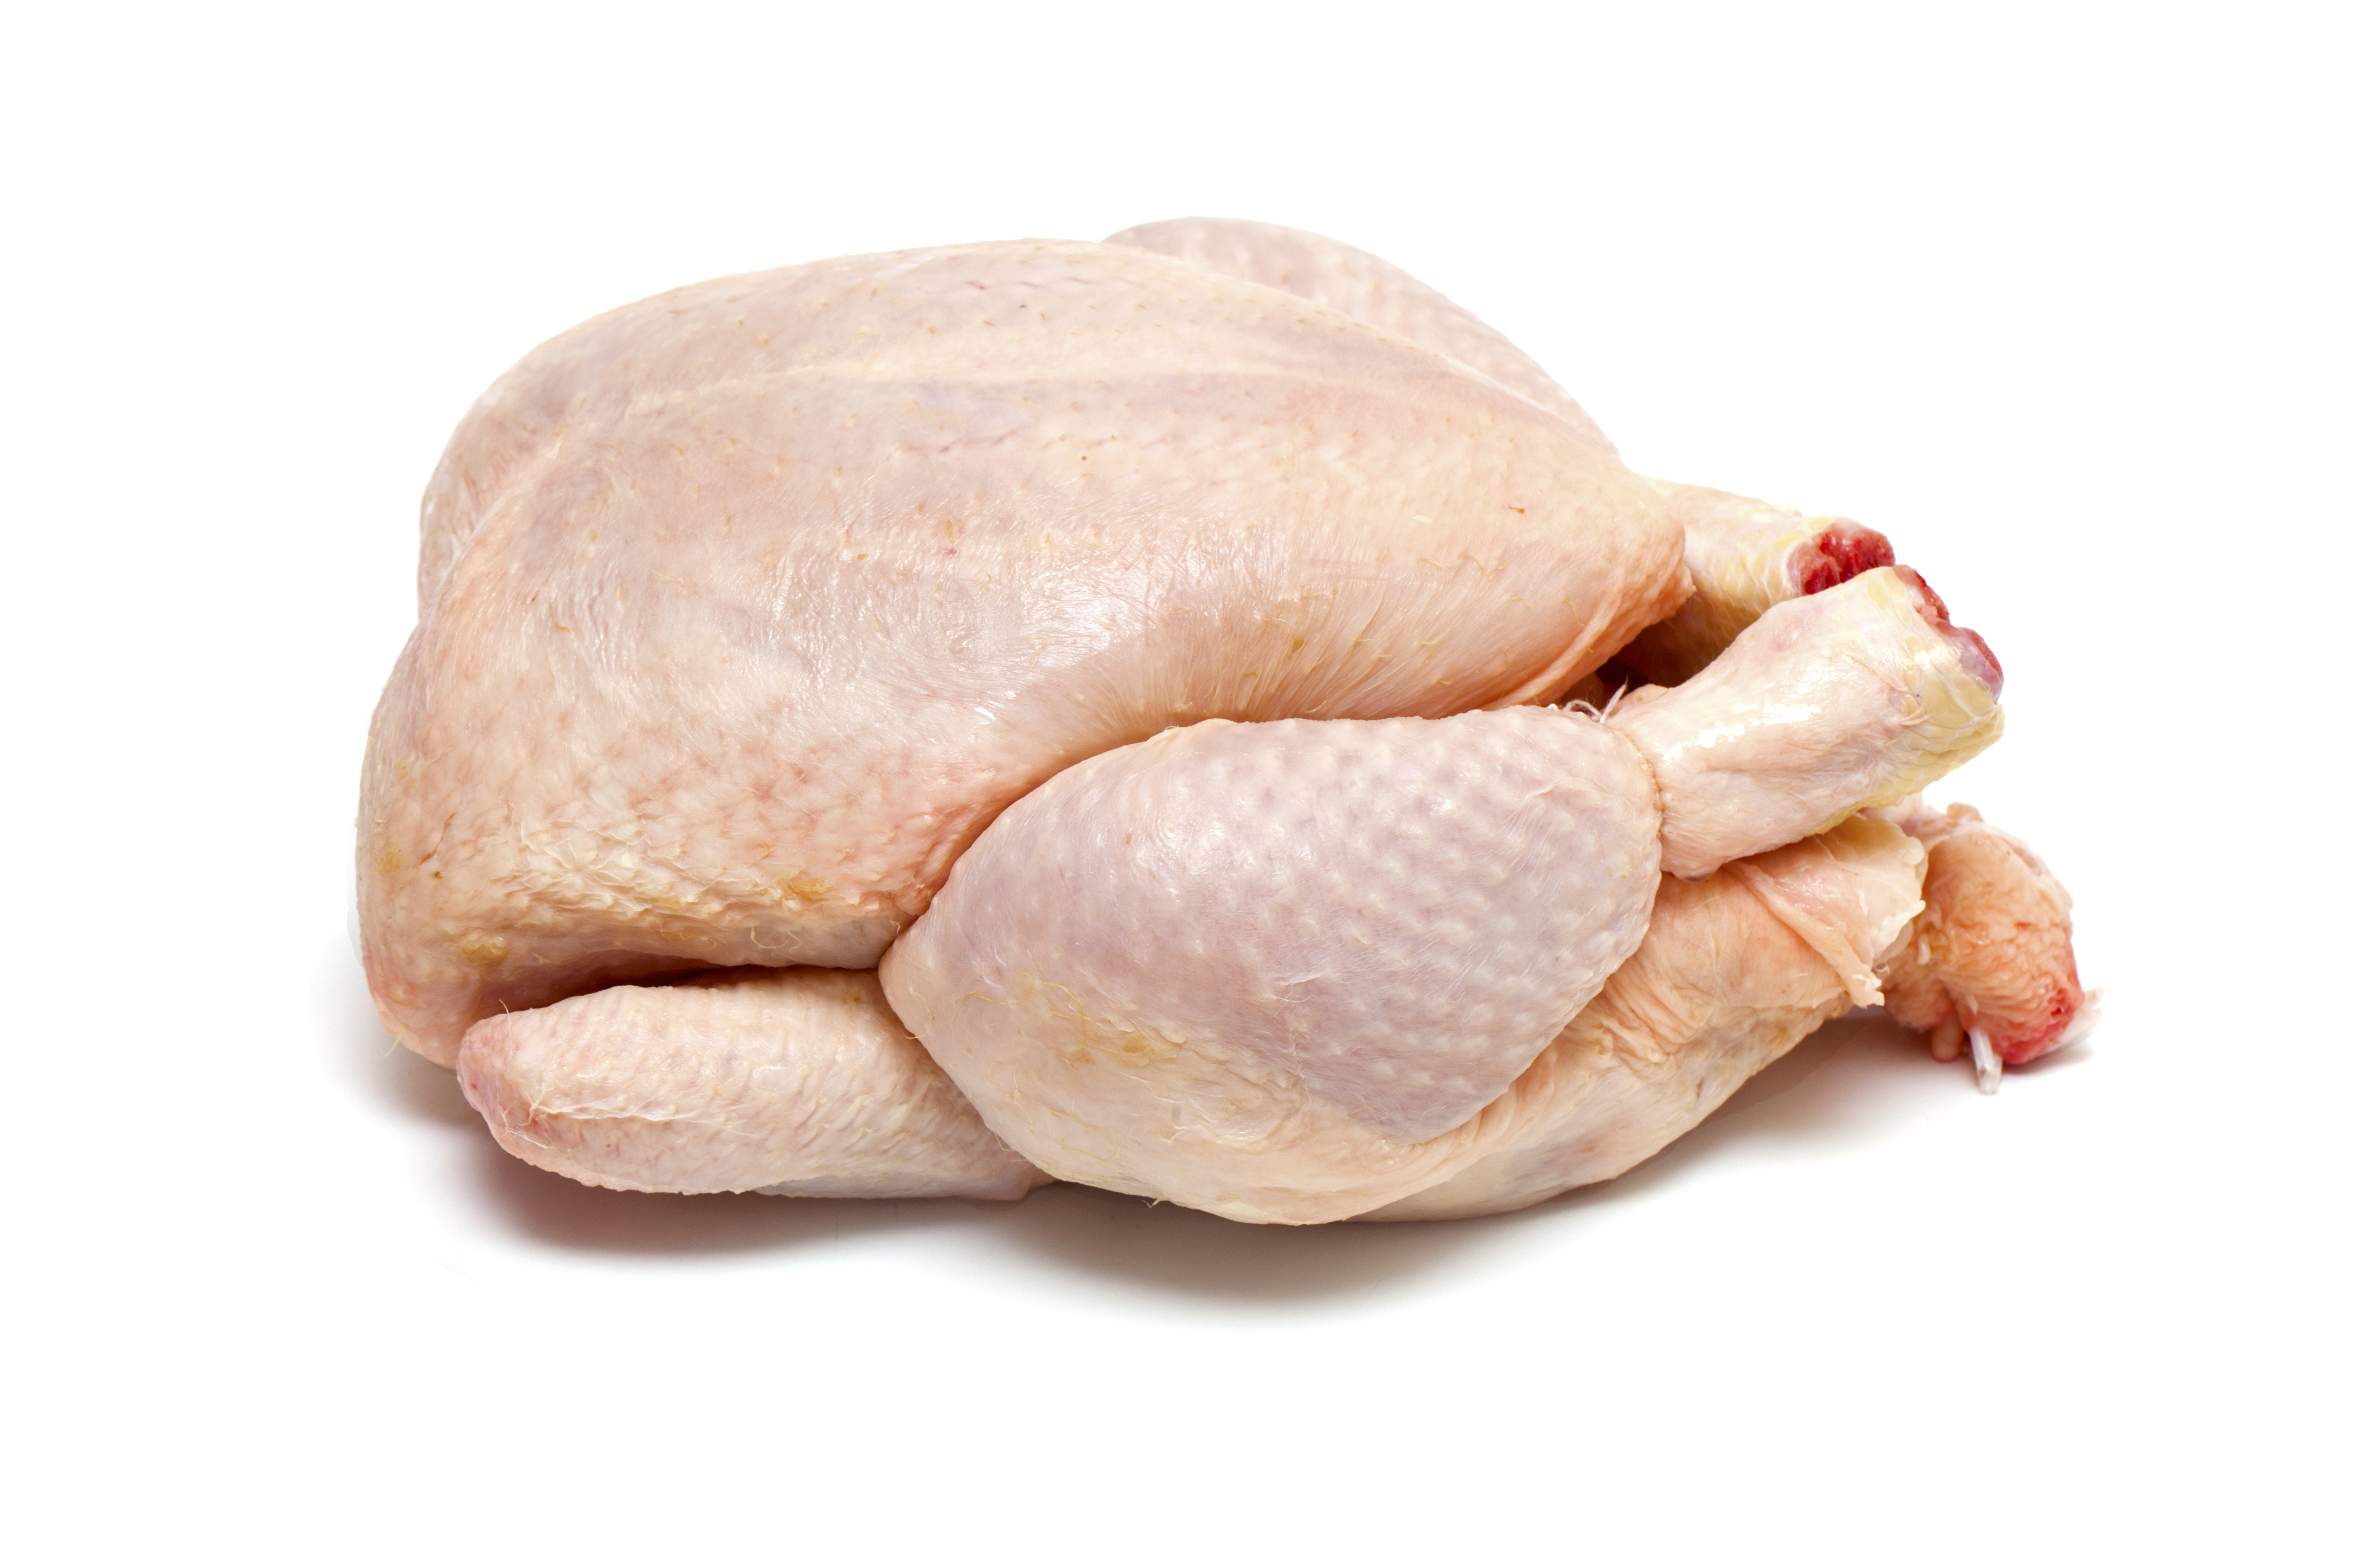 perdue chicken recall 2014 more than 700 pounds of. Black Bedroom Furniture Sets. Home Design Ideas